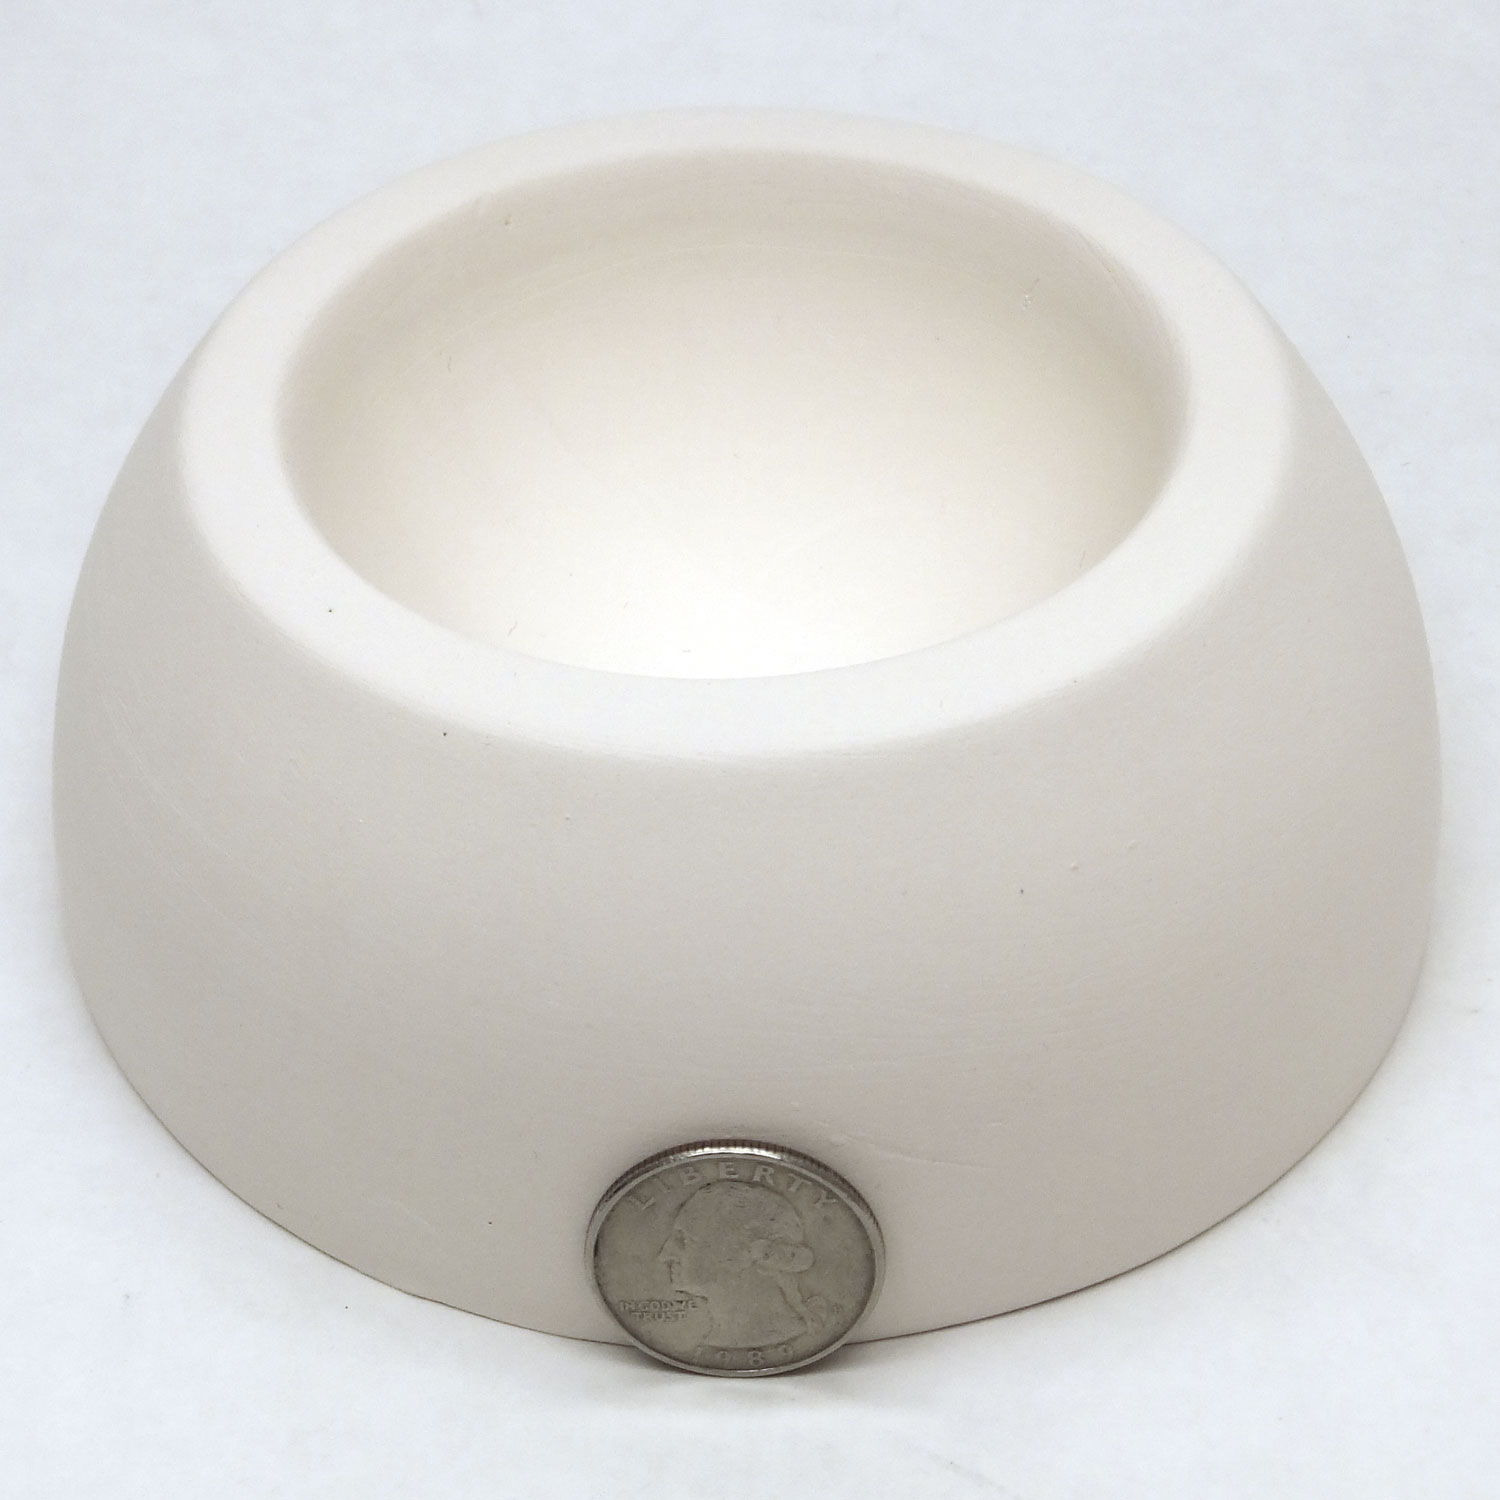 Delphi Studio Dome Paper Weight Mold Glass Casting